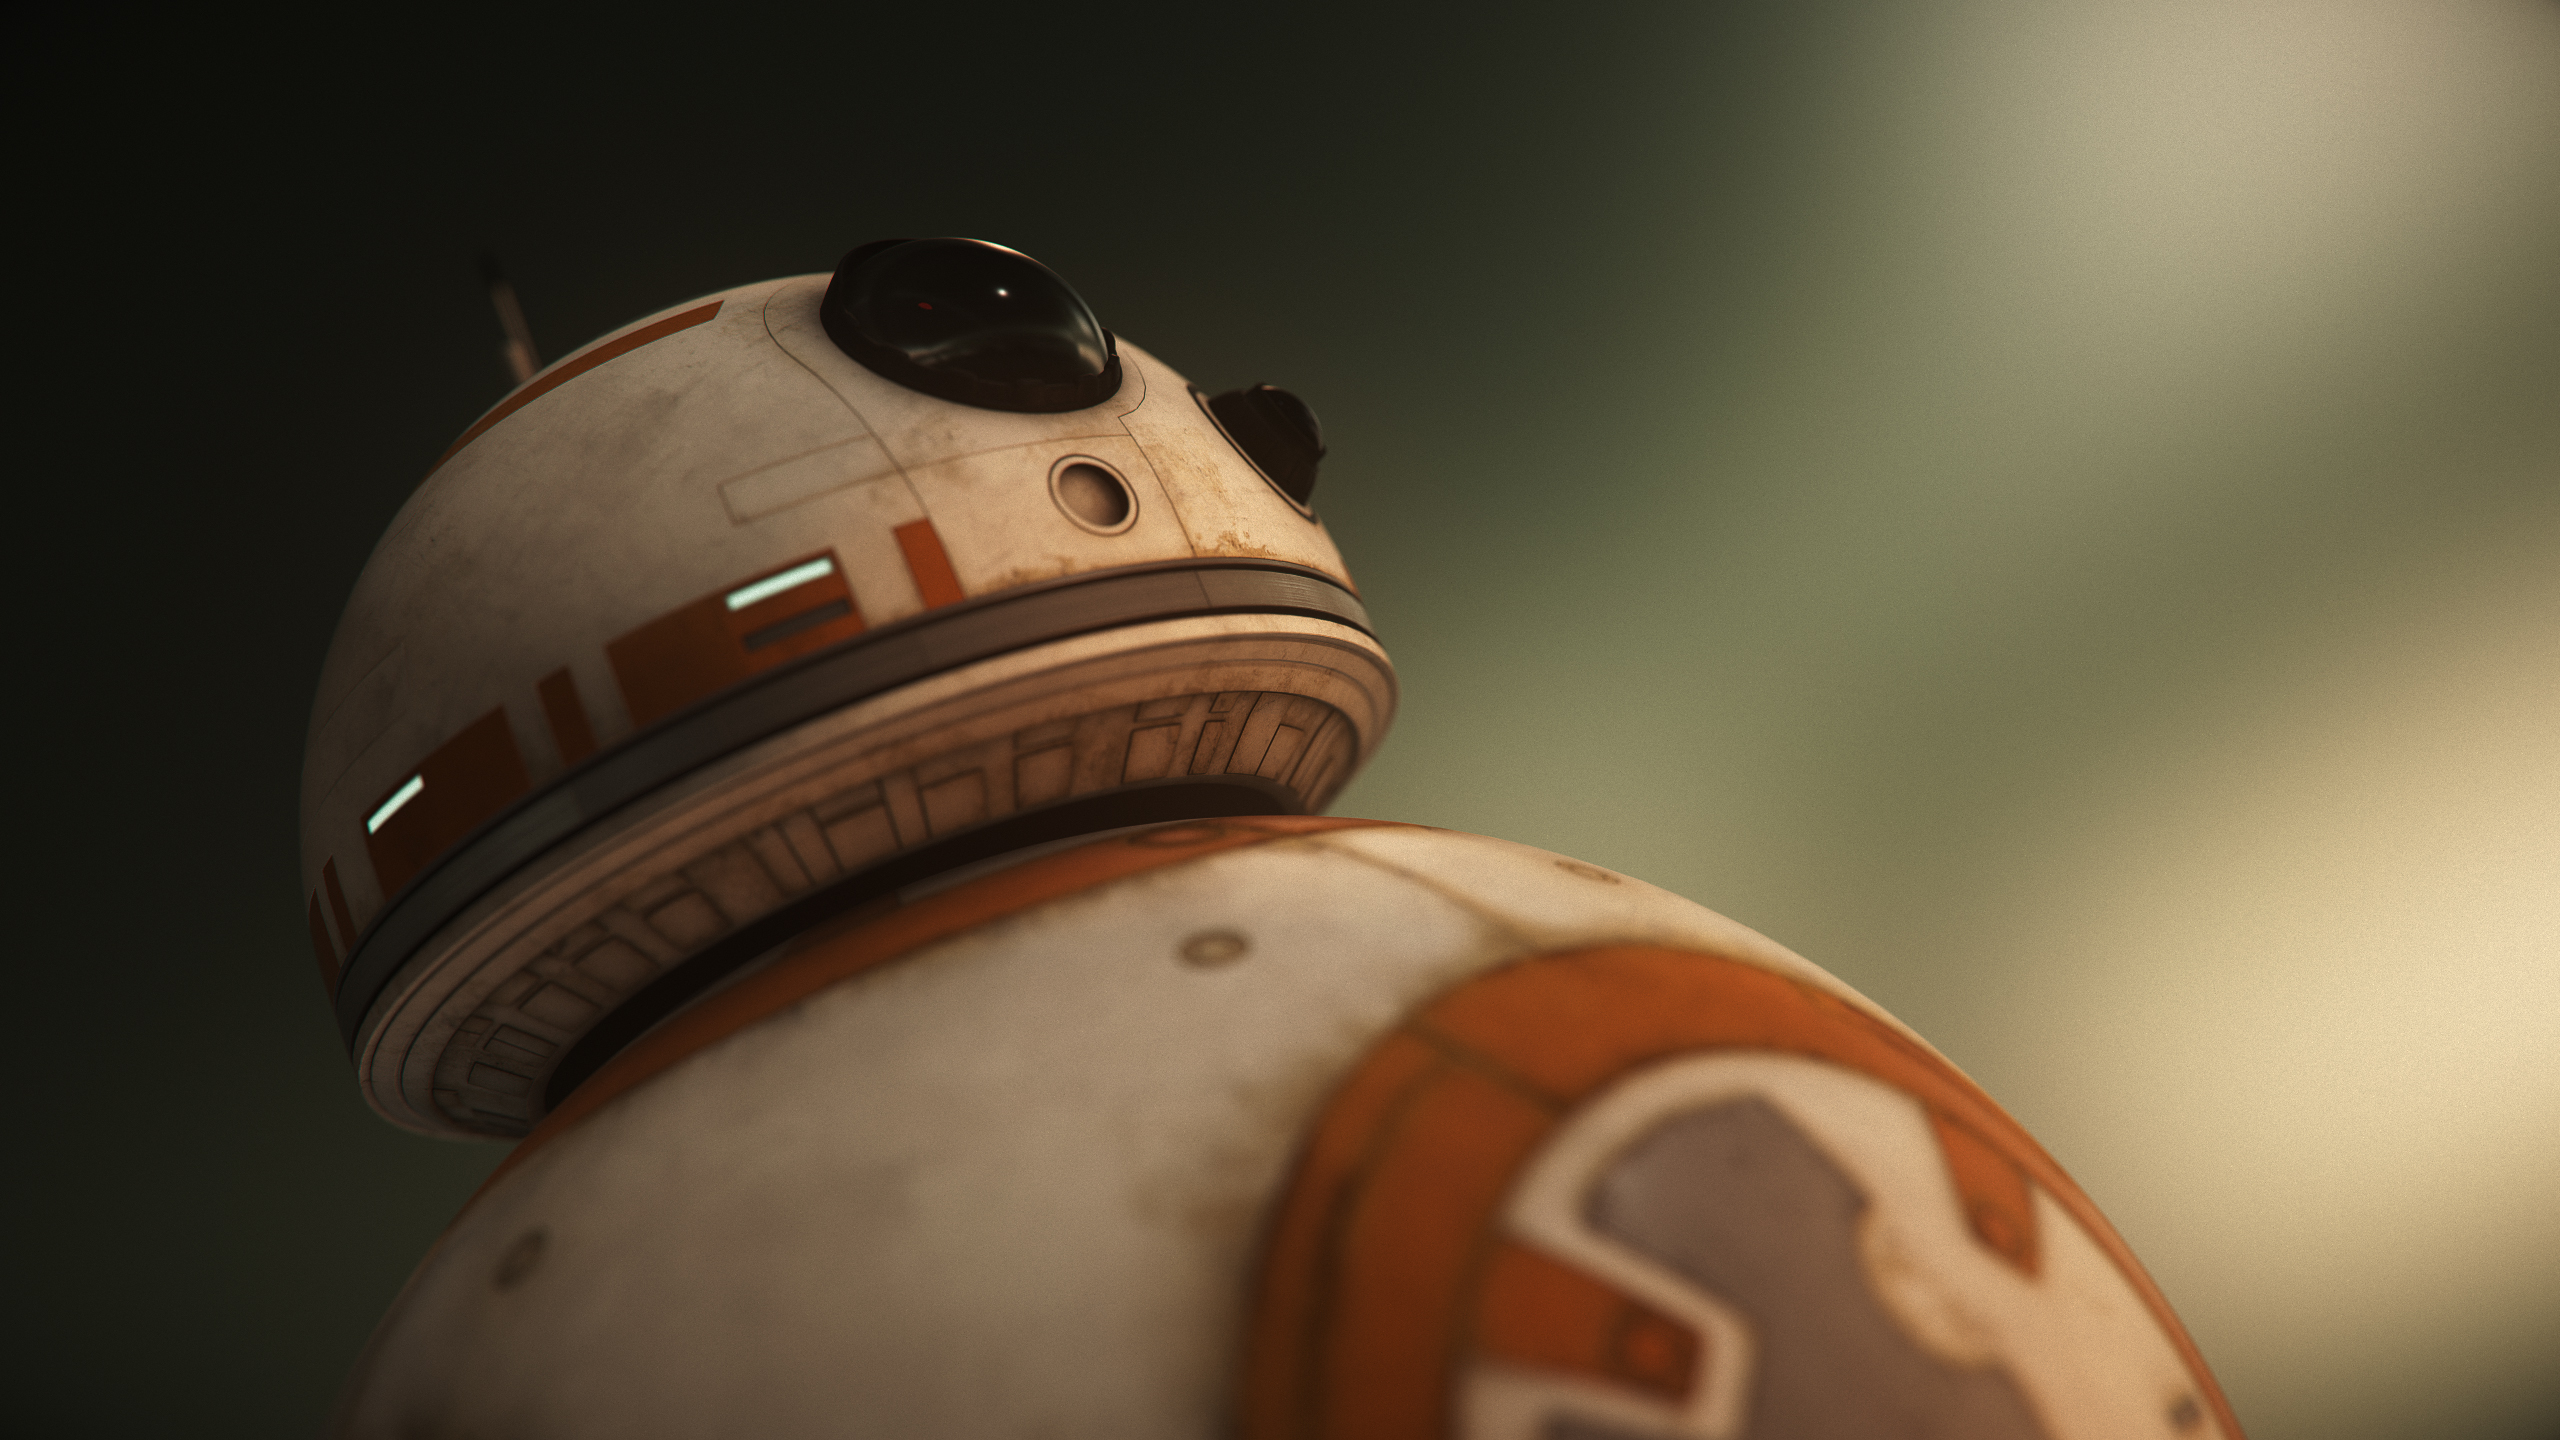 Bb 8 Droid In Star Wars Wallpapers Hd Wallpapers